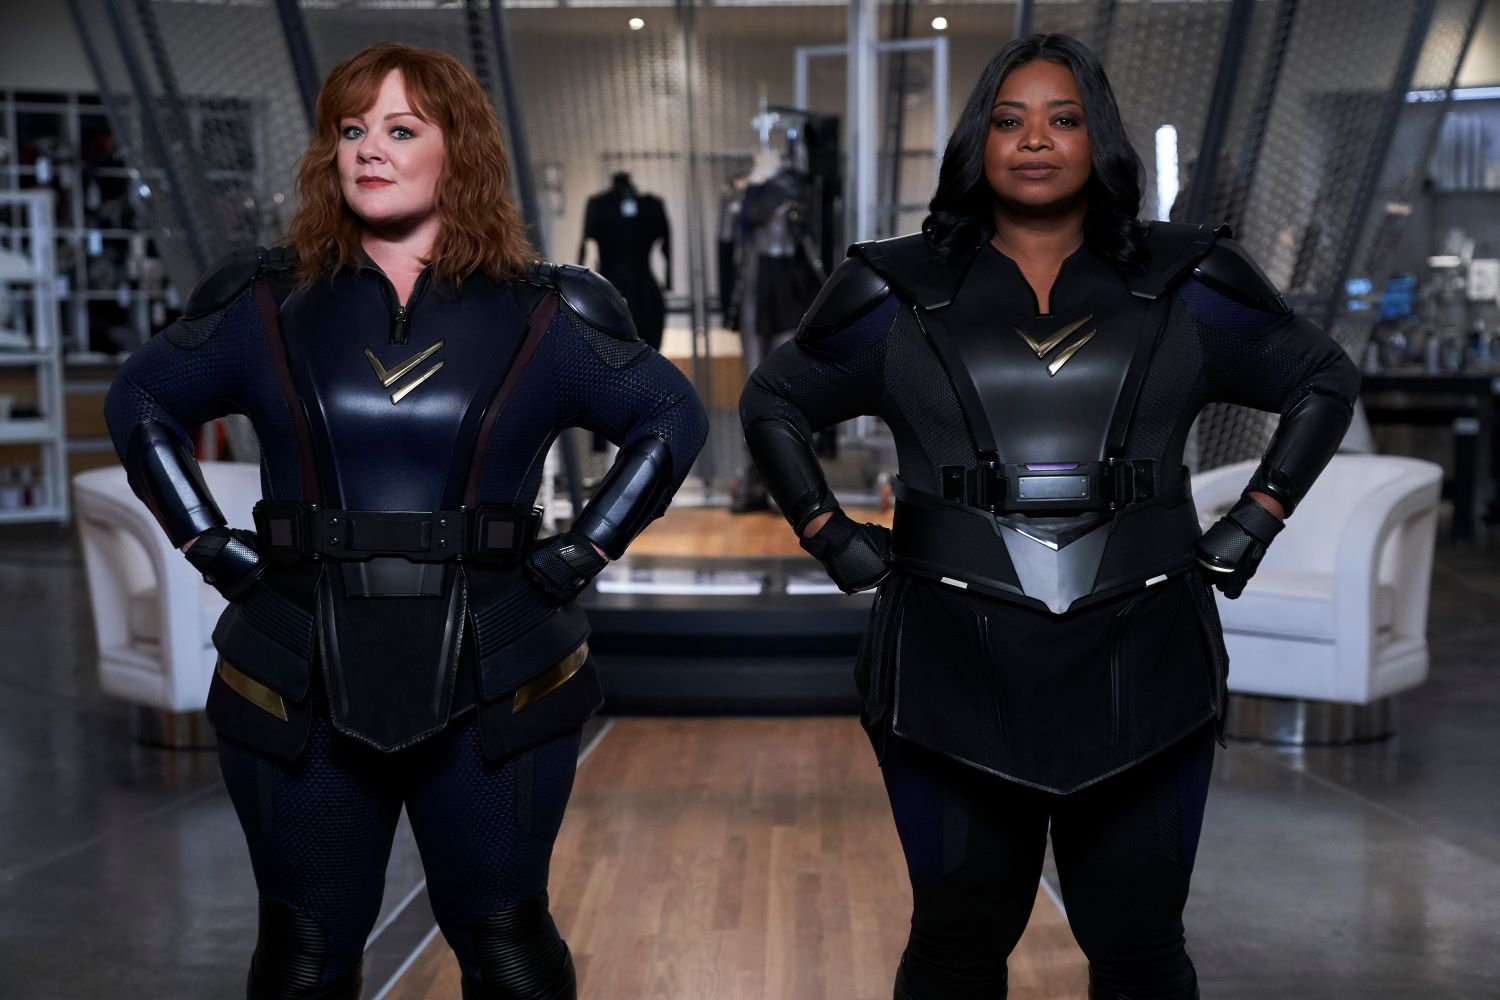 Melissa McCarthy and Octavia Spencer in 'Thunder Force'